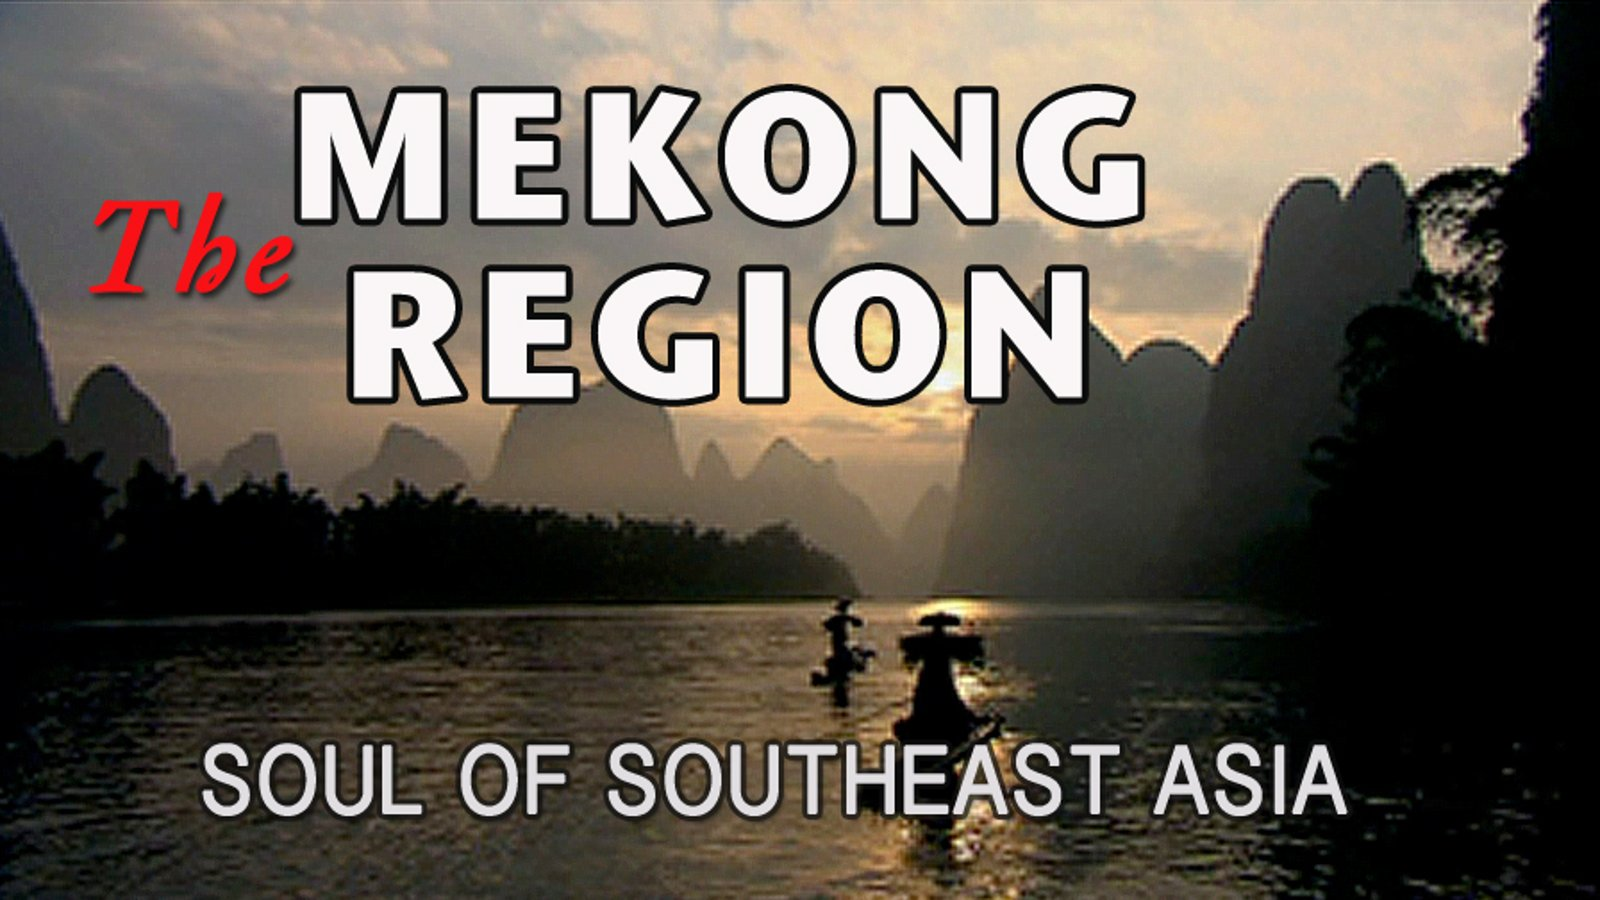 Mekong Region - The Soul of Southeast Asia Series